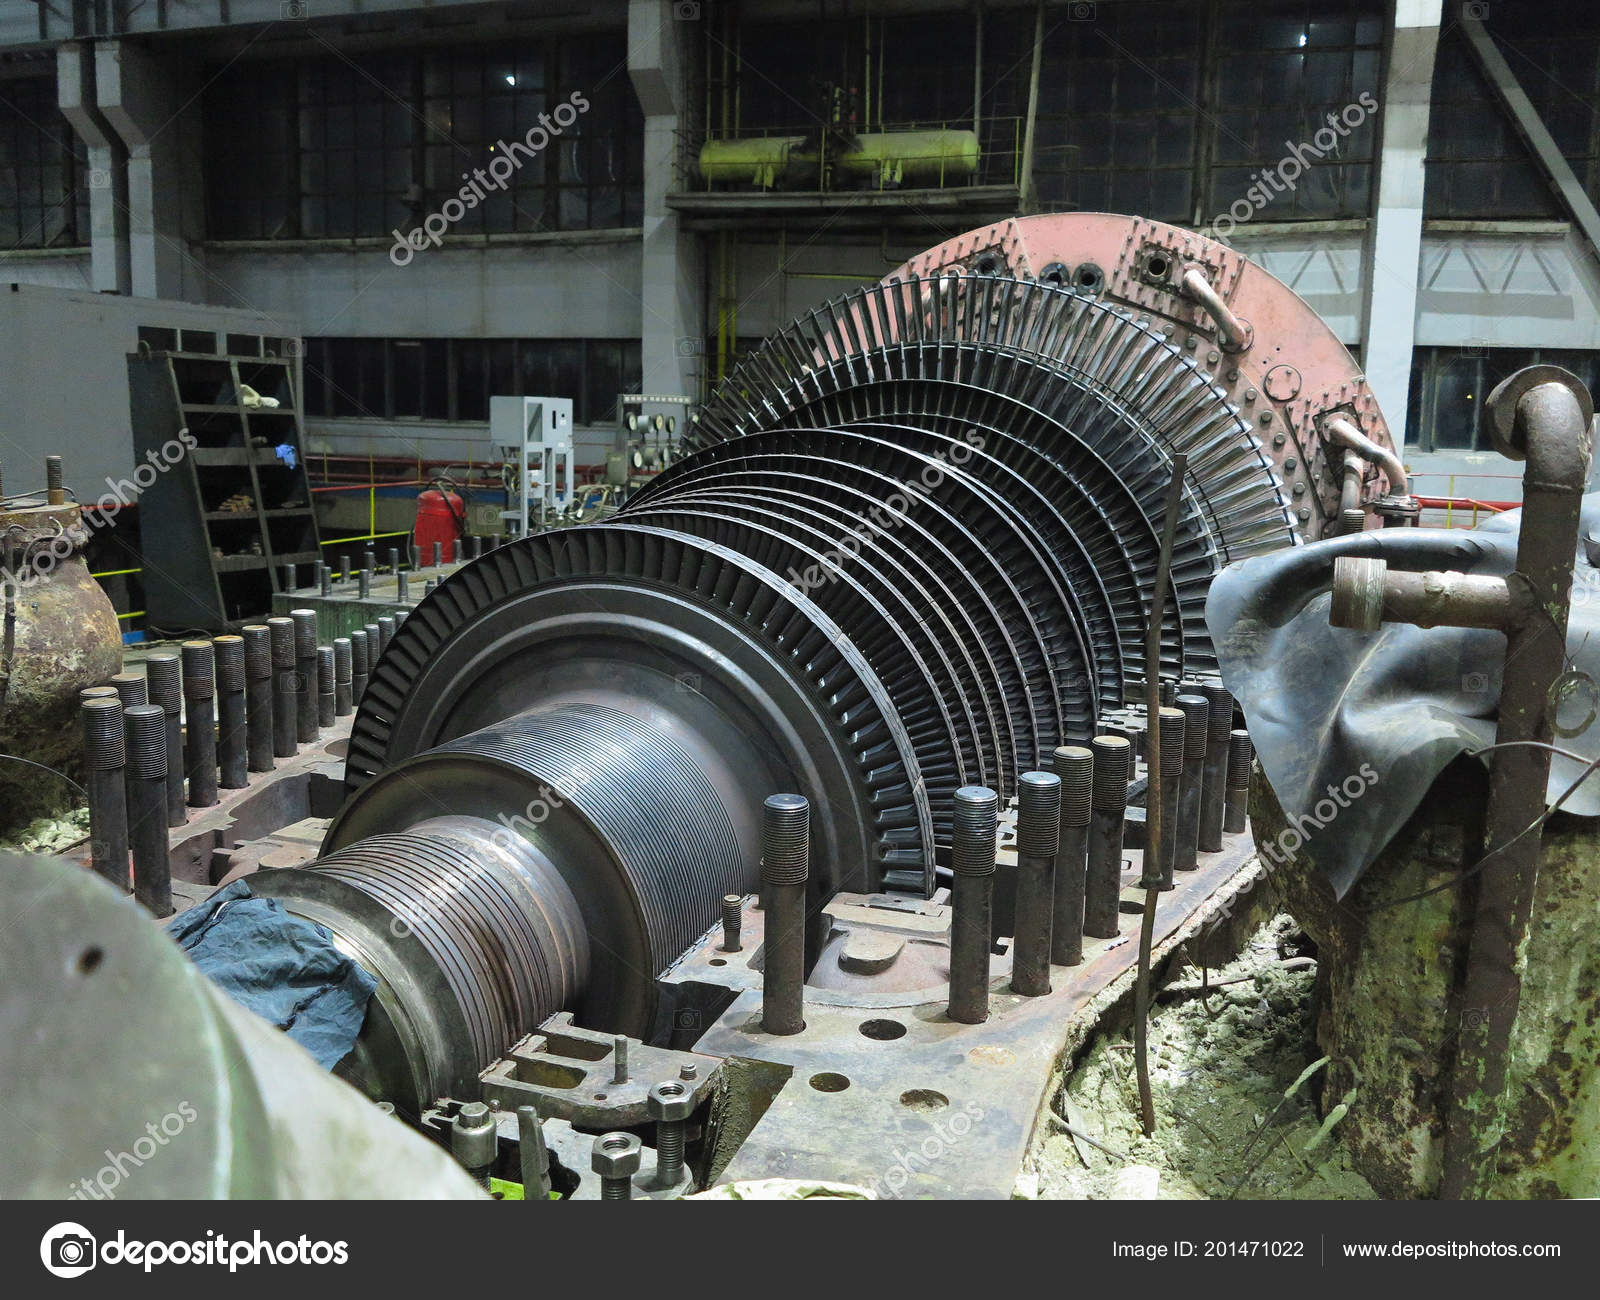 electric generator power plant combined cycle gas steam turbine disassembled steam turbine in the process of repairing an electric generator at power plant photo by arogant steam turbine process repairing electric generator